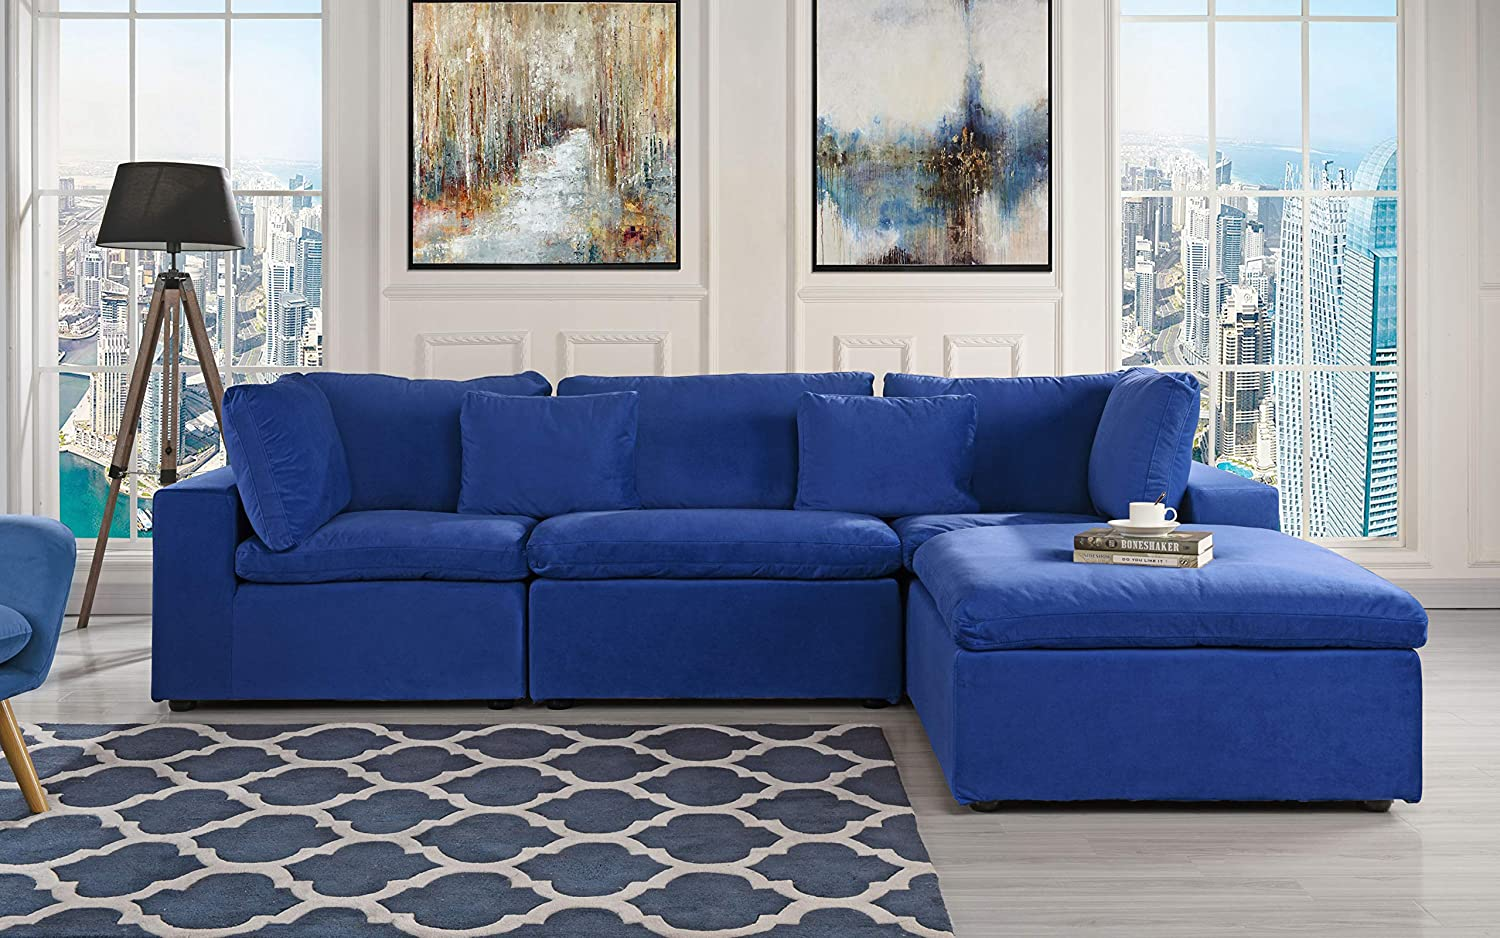 Stupendous Classic Large Velvet Sectional Sofa L Shape Couch With Wide Chaise Dark Blue Download Free Architecture Designs Scobabritishbridgeorg